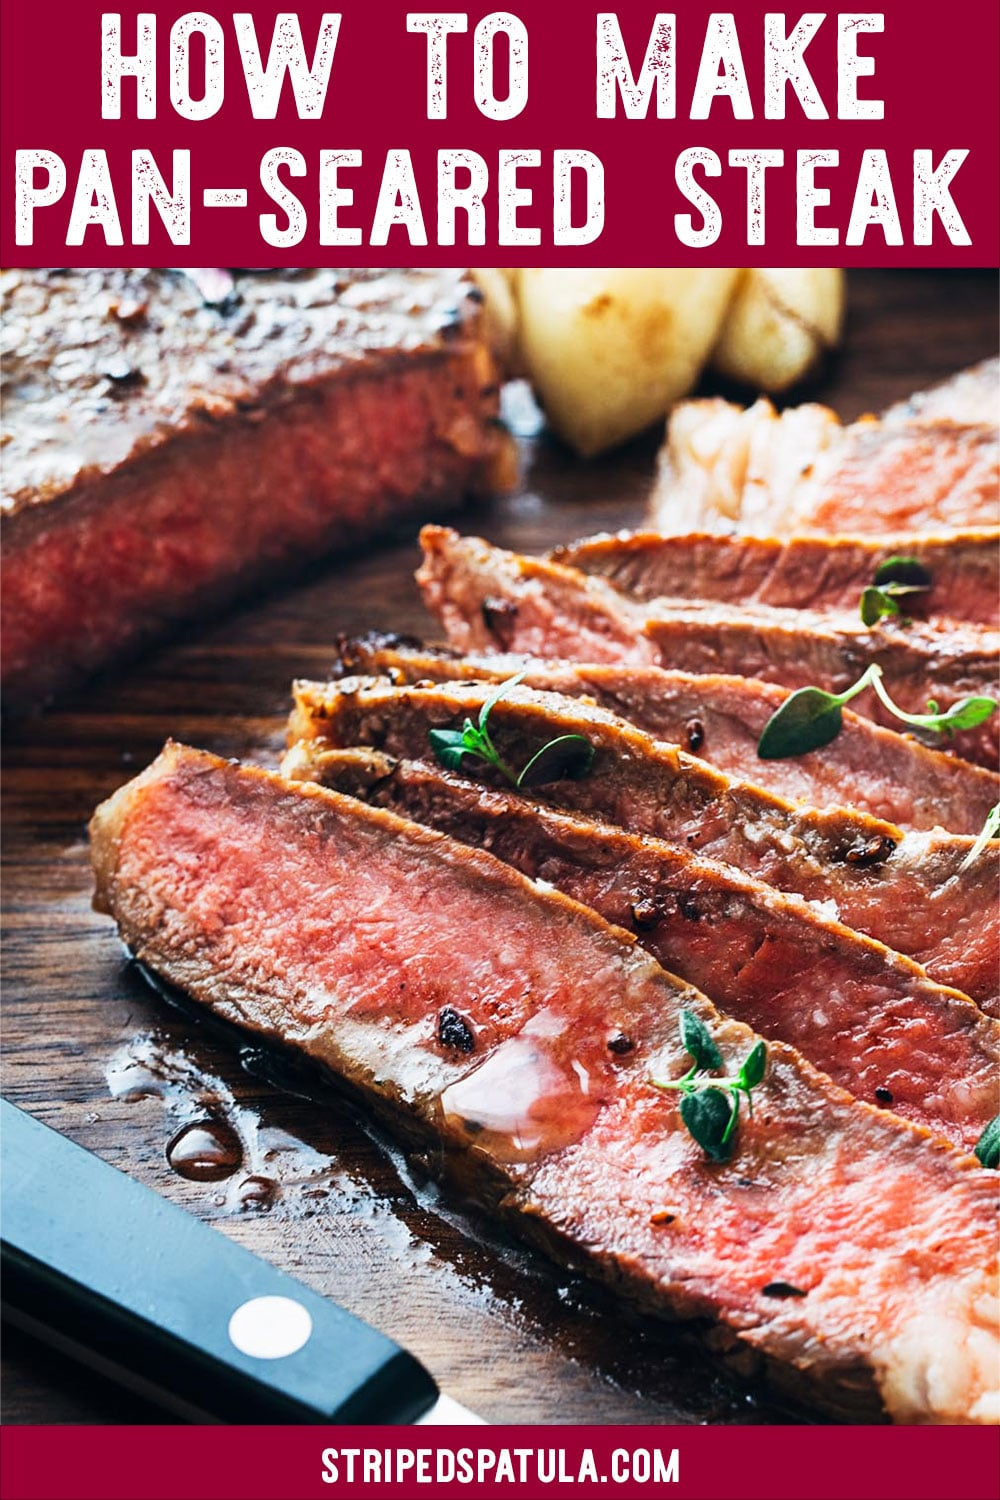 Learn how to make Pan-Seared Steak at home that will rival your favorite restaurants! By using a cast iron skillet and basting the steak with garlic-infused butter, it's easy to make a perfect steak on the stove, every time. #beef #dinner